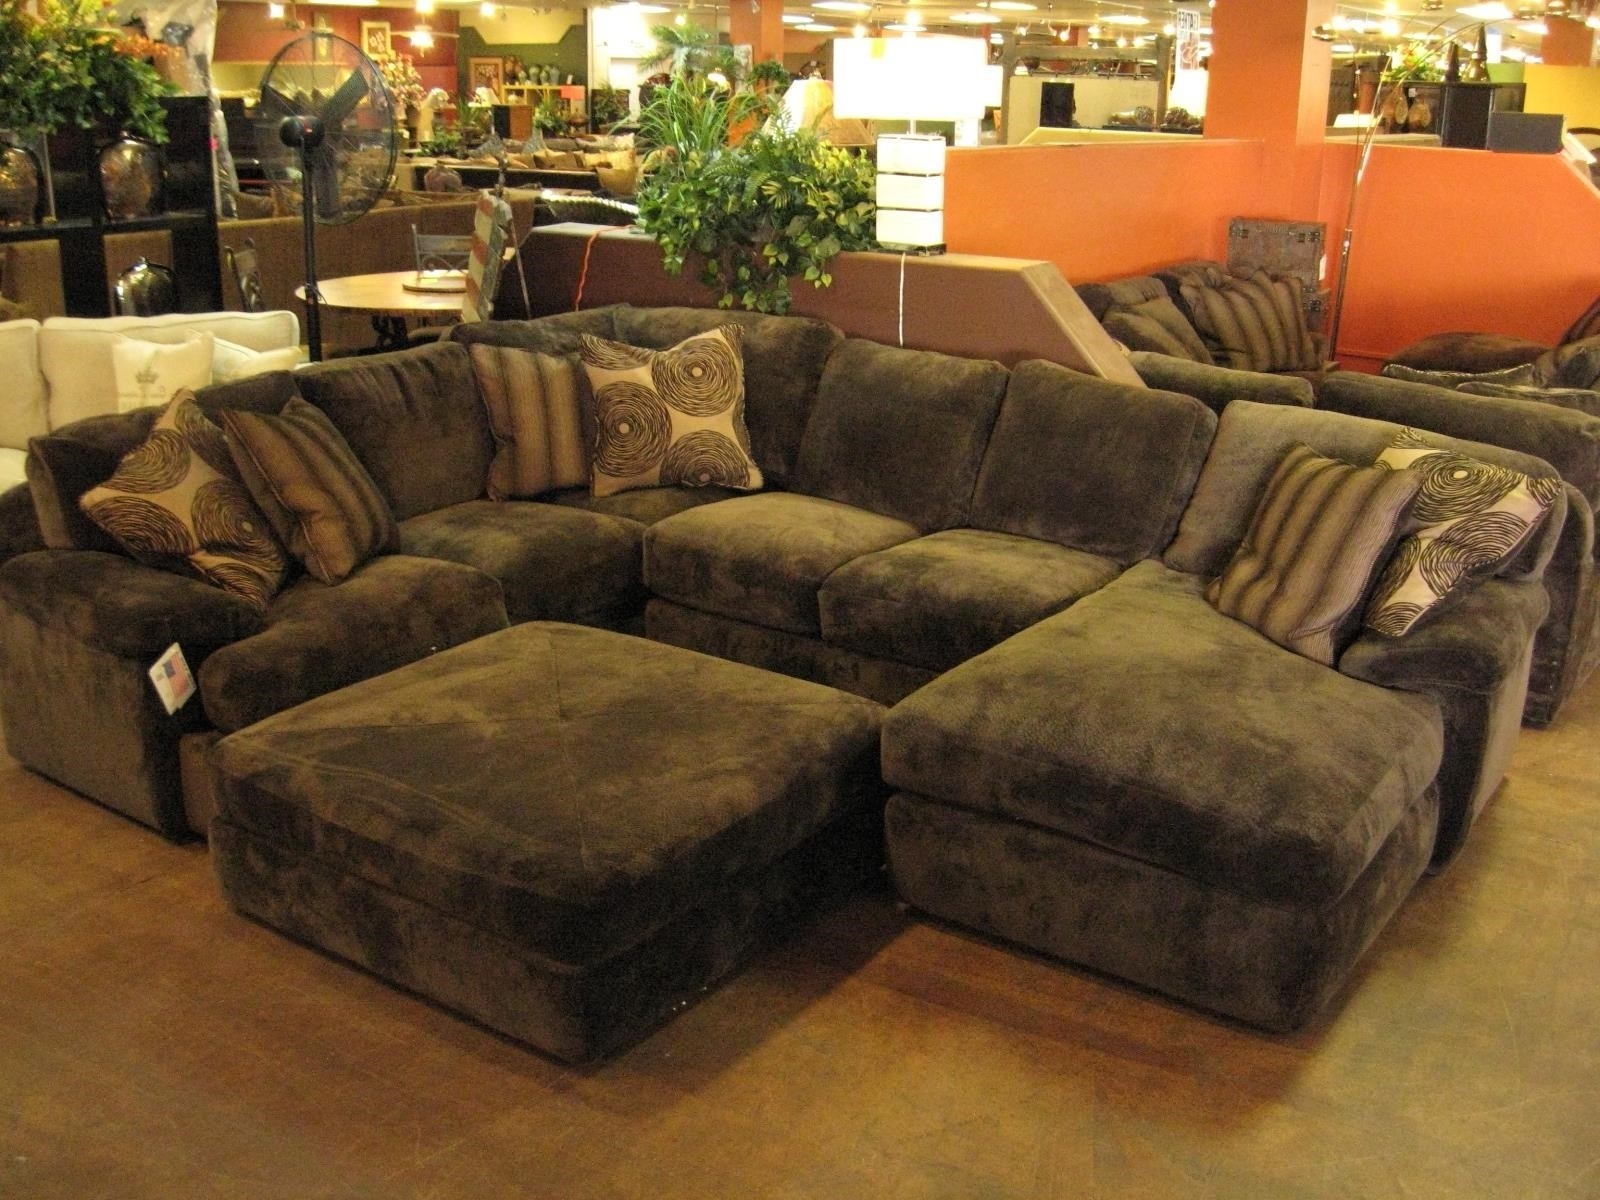 Excellent Oversized Sectionals Sofas 81 About Remodel Small regarding Oversized Sectional Sofas (Image 2 of 10)